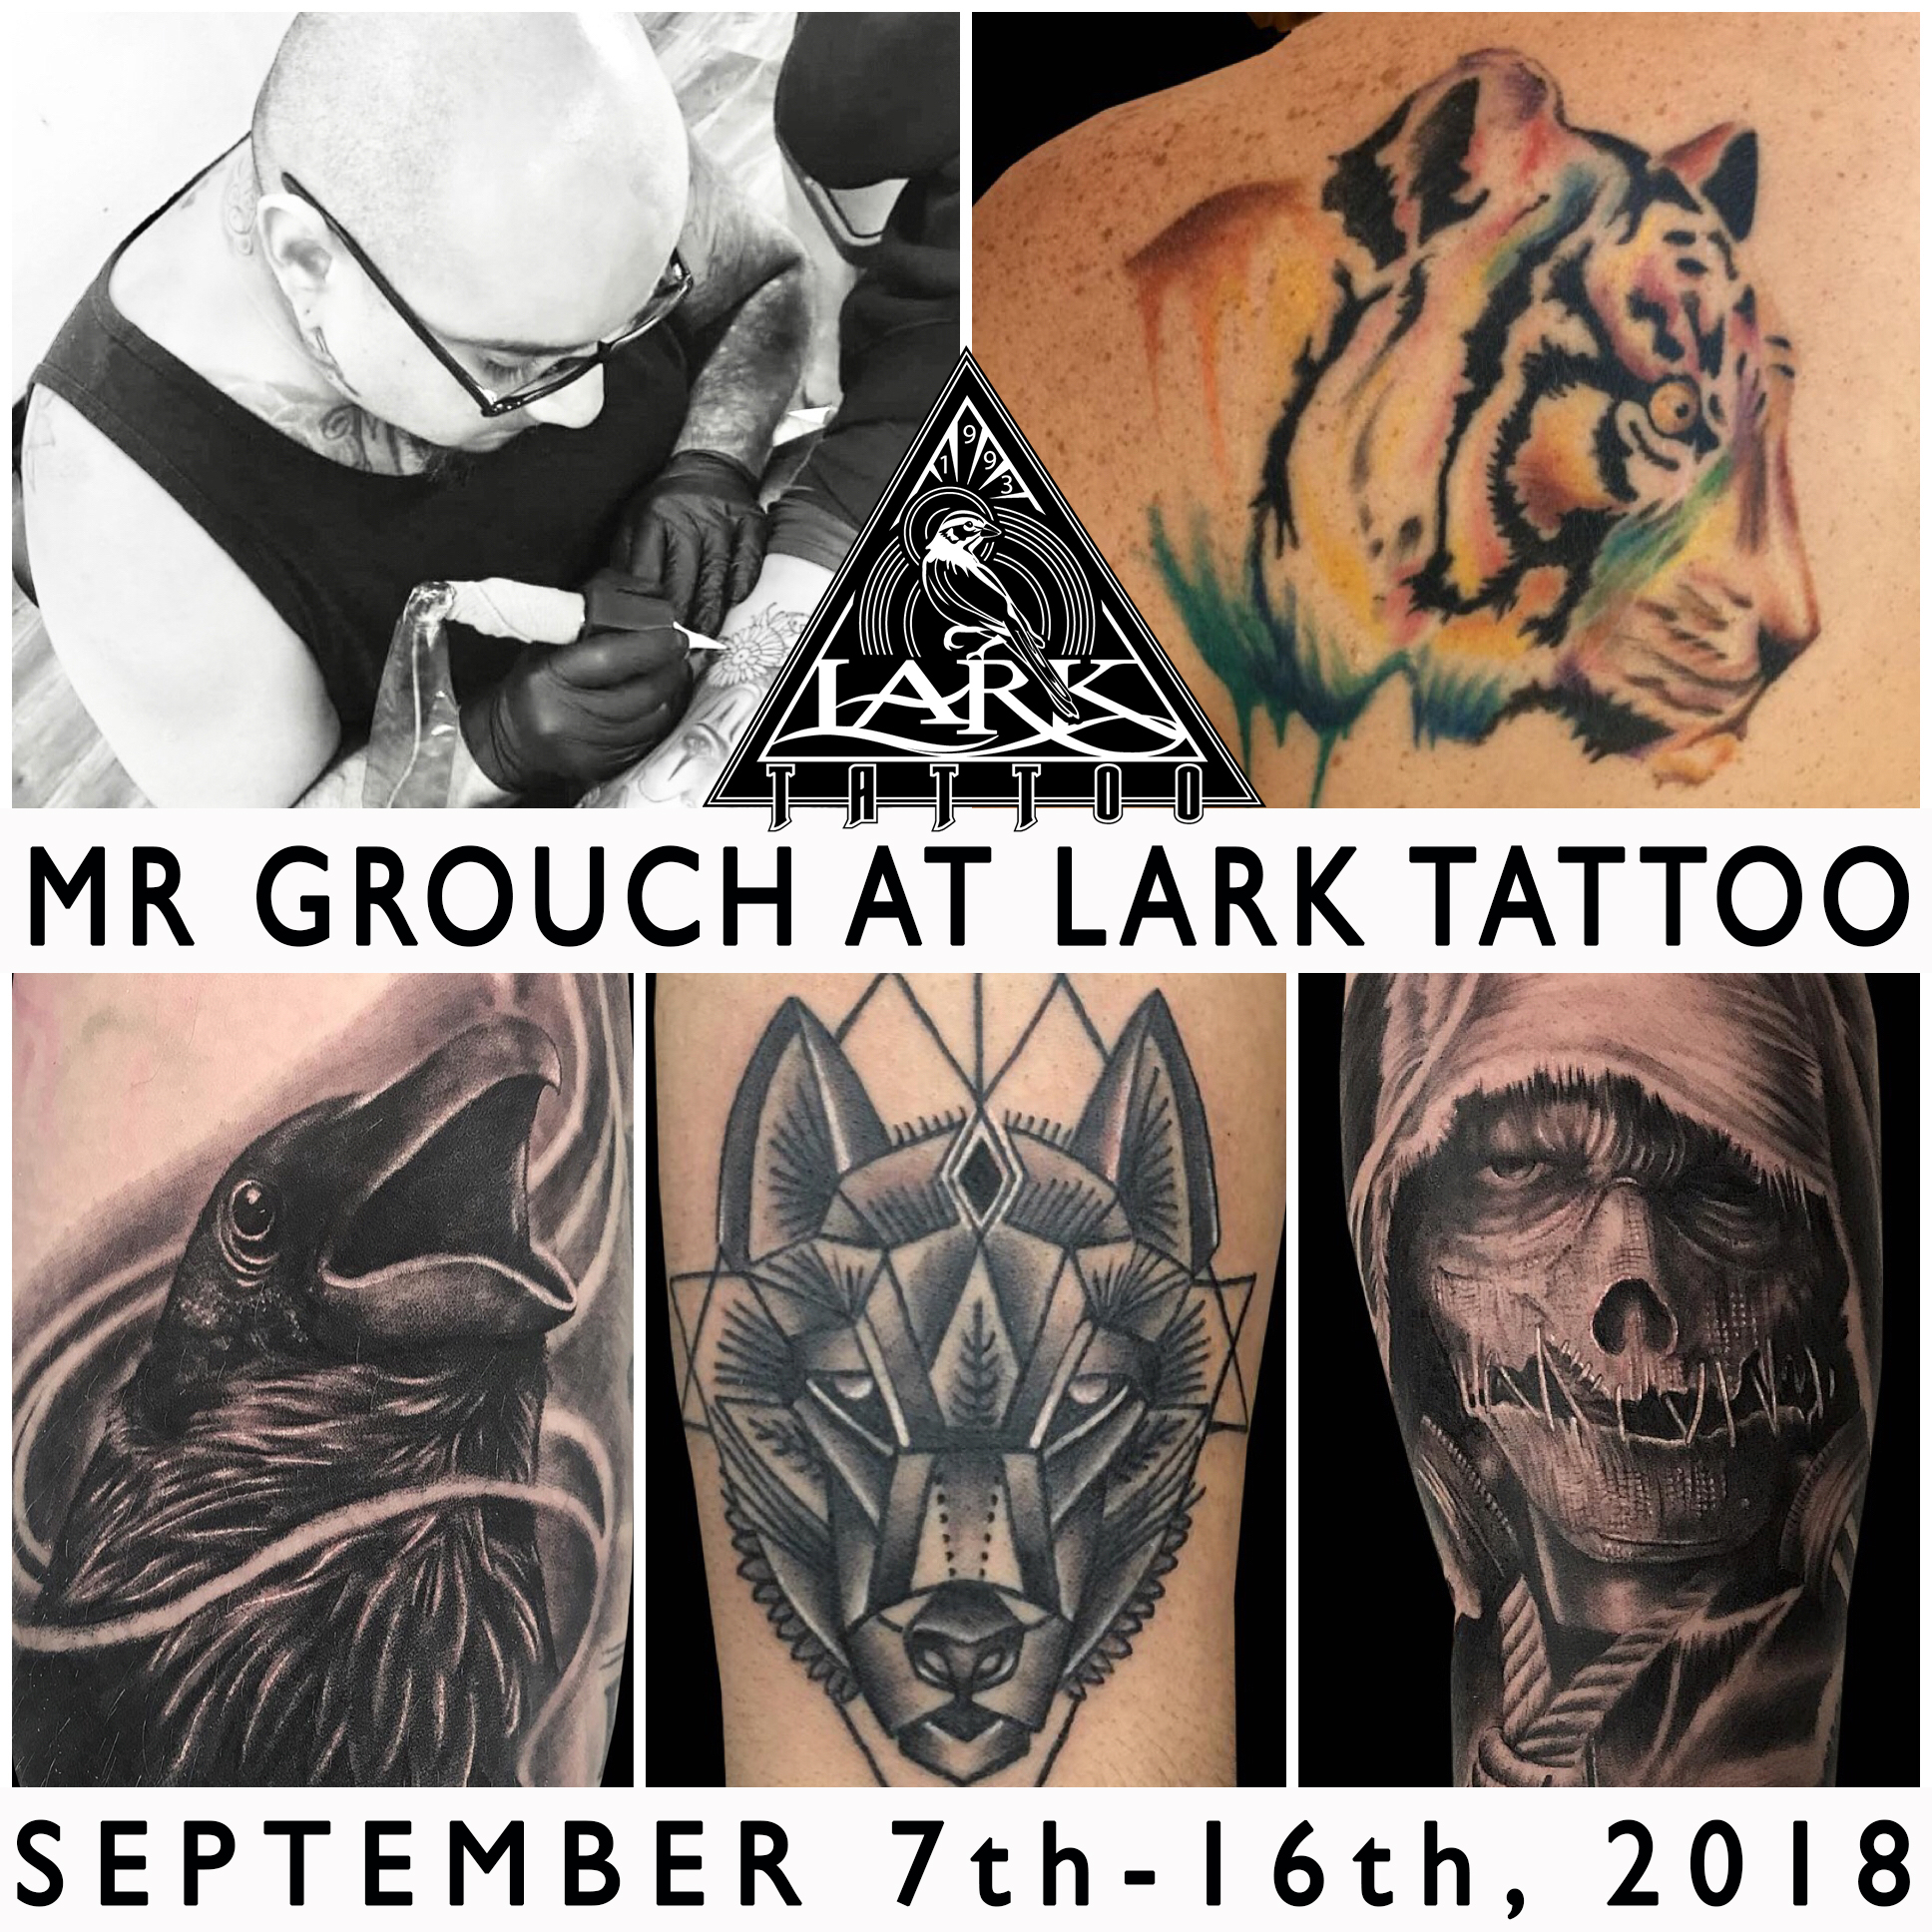 #bng #bngtattoo #blackandgraytattoo blackandgreytattoo #realismtattoo #watercolortattoo #gemetrictattoo #animaltattoo #colortattoo #tattoo #tattoos #tat #tats #tatts #tatted #tattedup #tattoist #tattooed #inked #inkedup #ink #tattoooftheday #amazingink #bodyart #tattooig #tattoosofinstagram #instatats  #larktattoo #larktattoos #larktattoowestbury #westbury #longisland #NY #NewYork #usa #art  #mrgrouch #mr #grouch